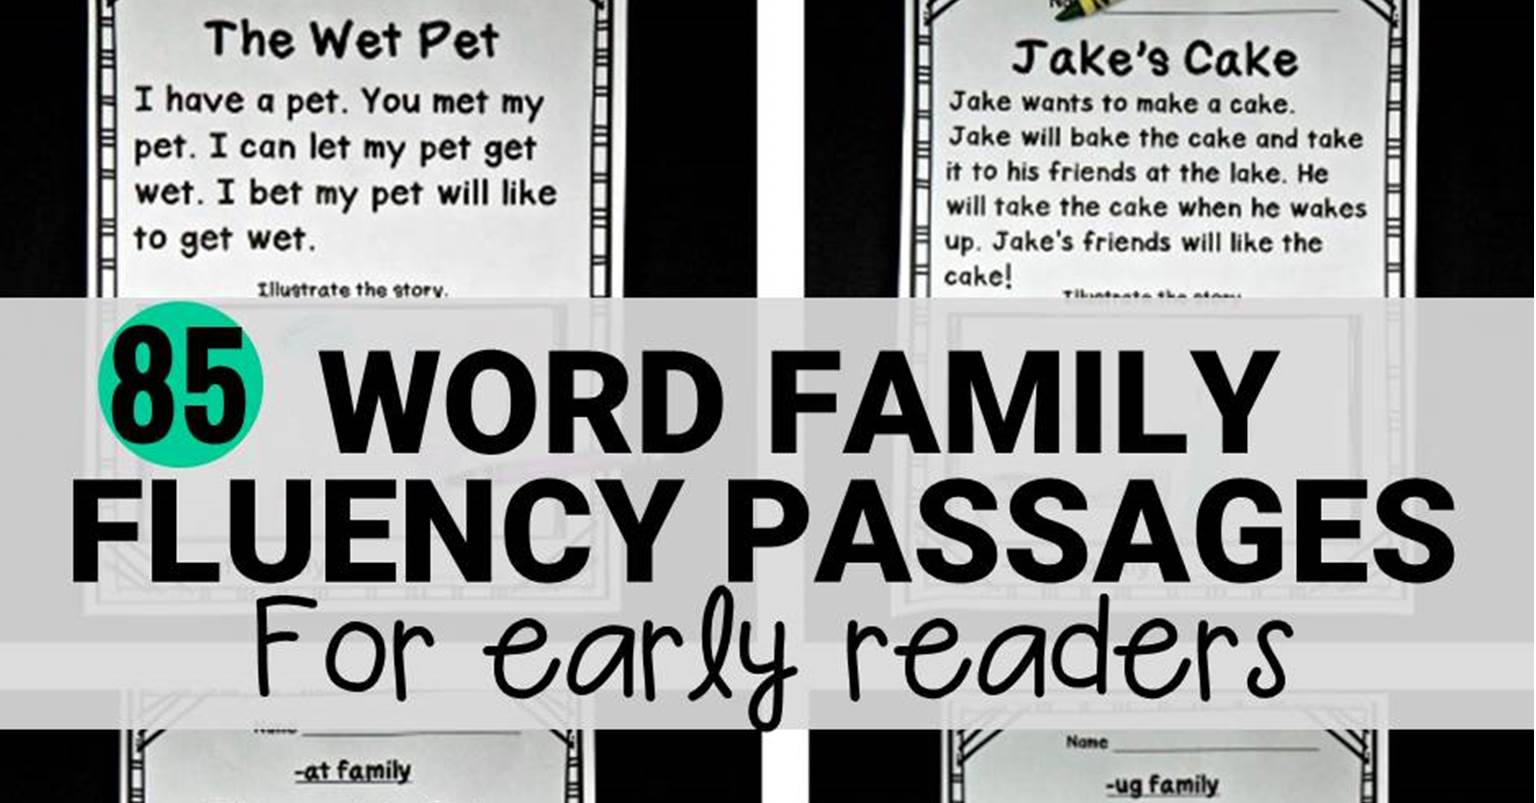 Fluency Passages For Early Readers